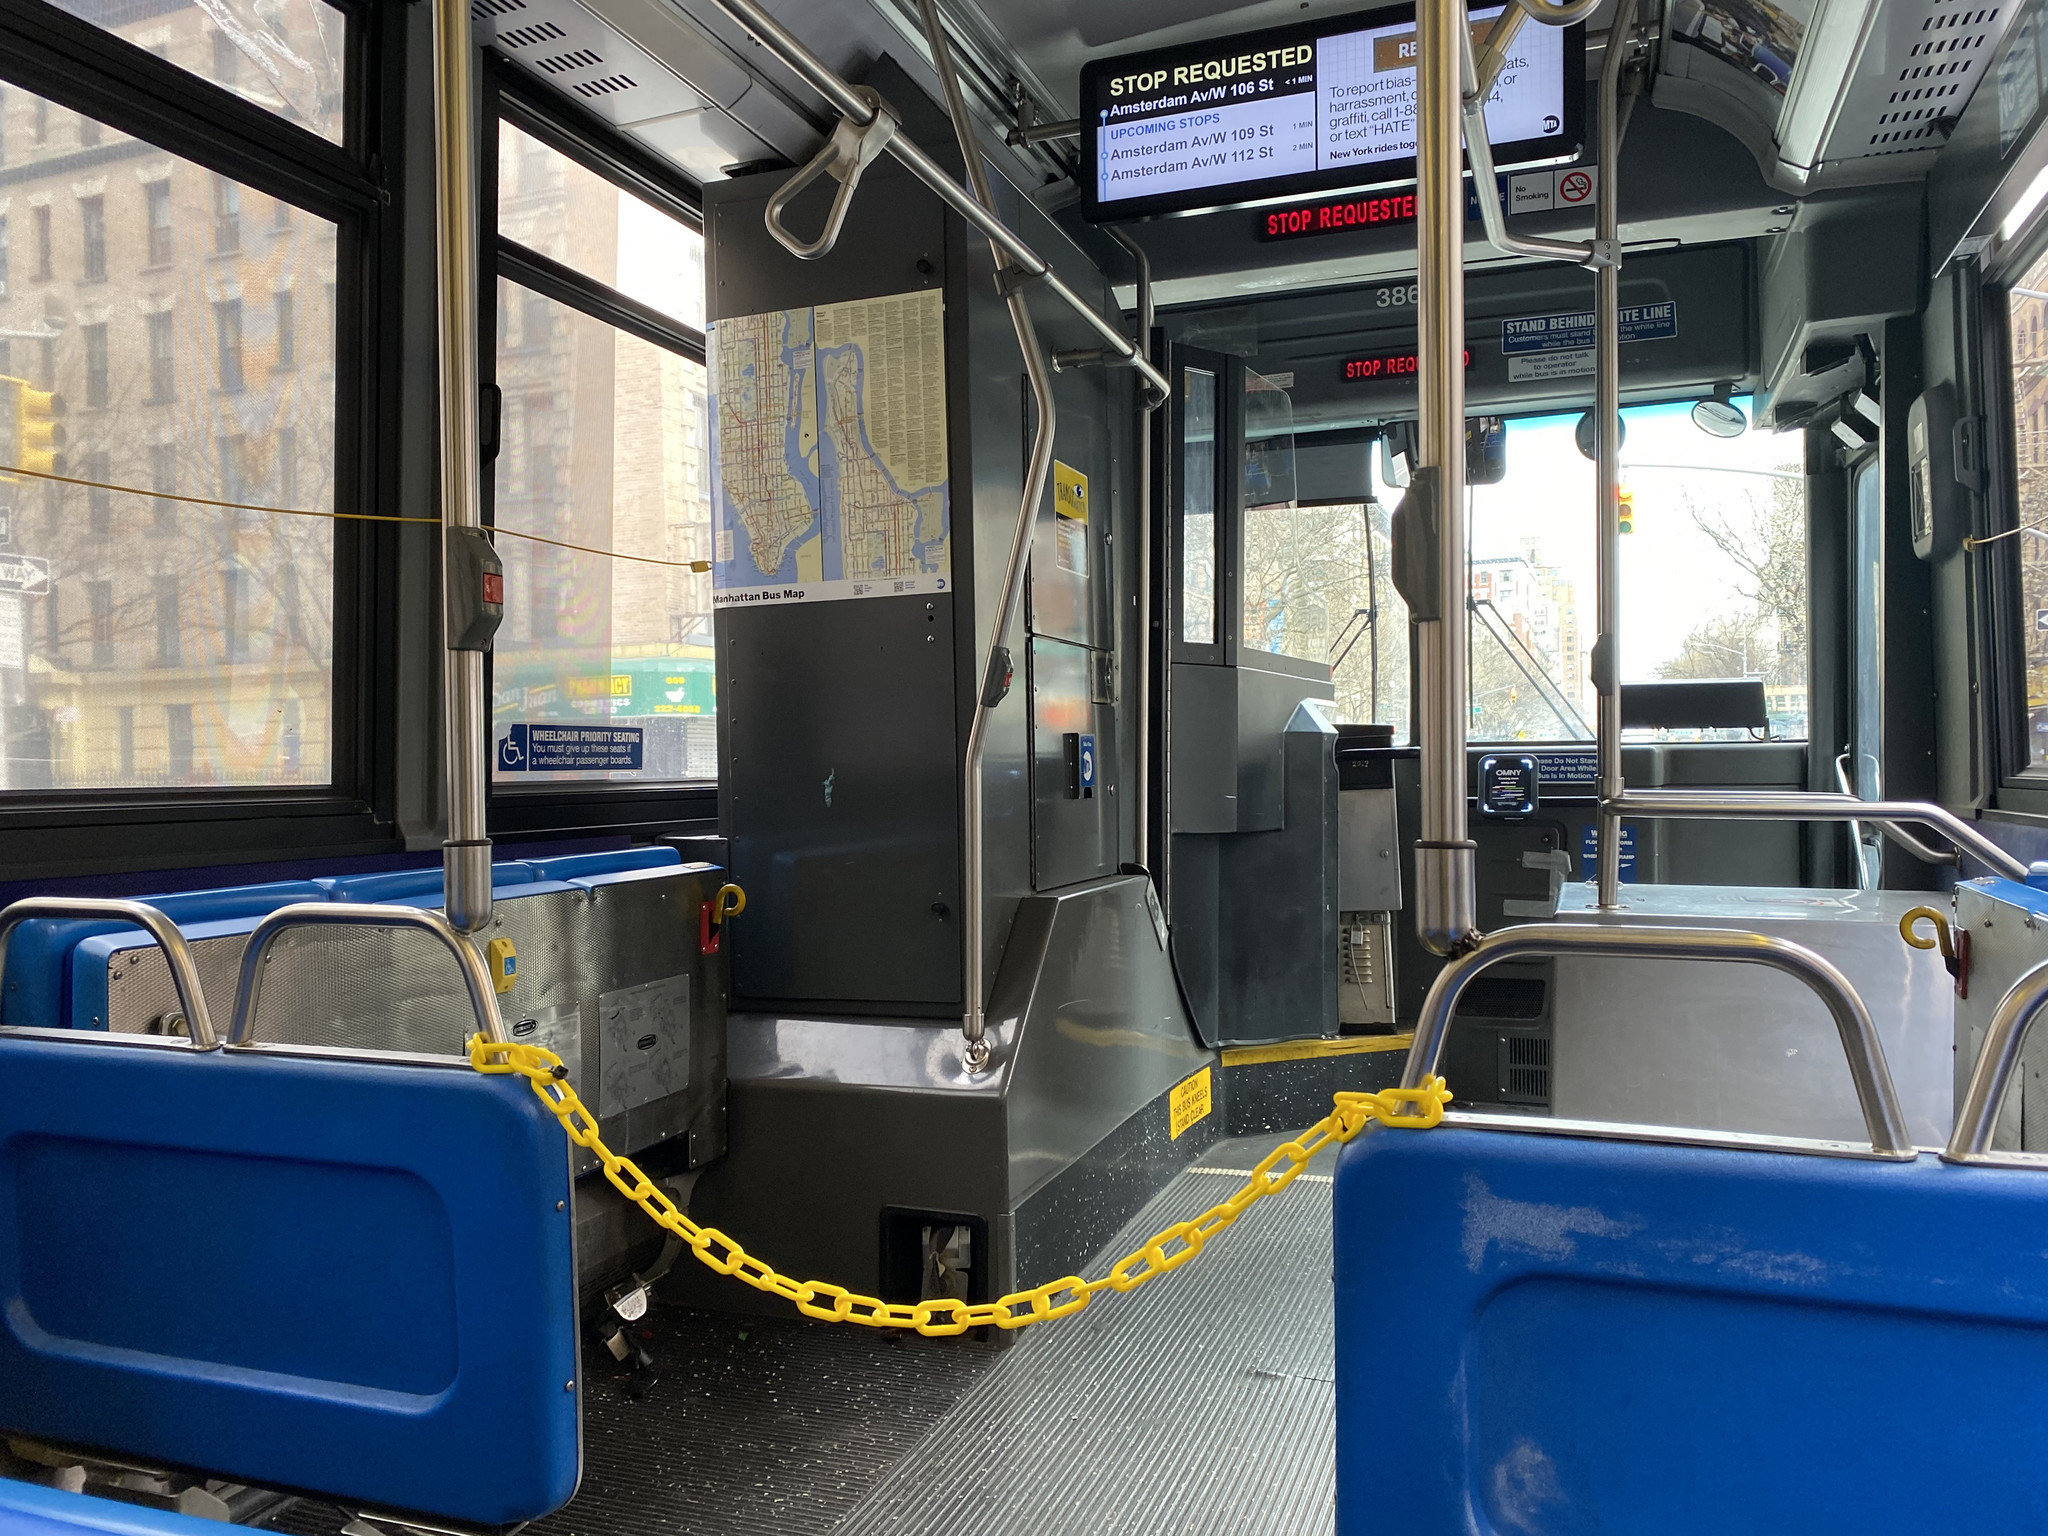 Yellow chains used to separate NYC bus riders from drivers, maintain distance amid coronavirus spread